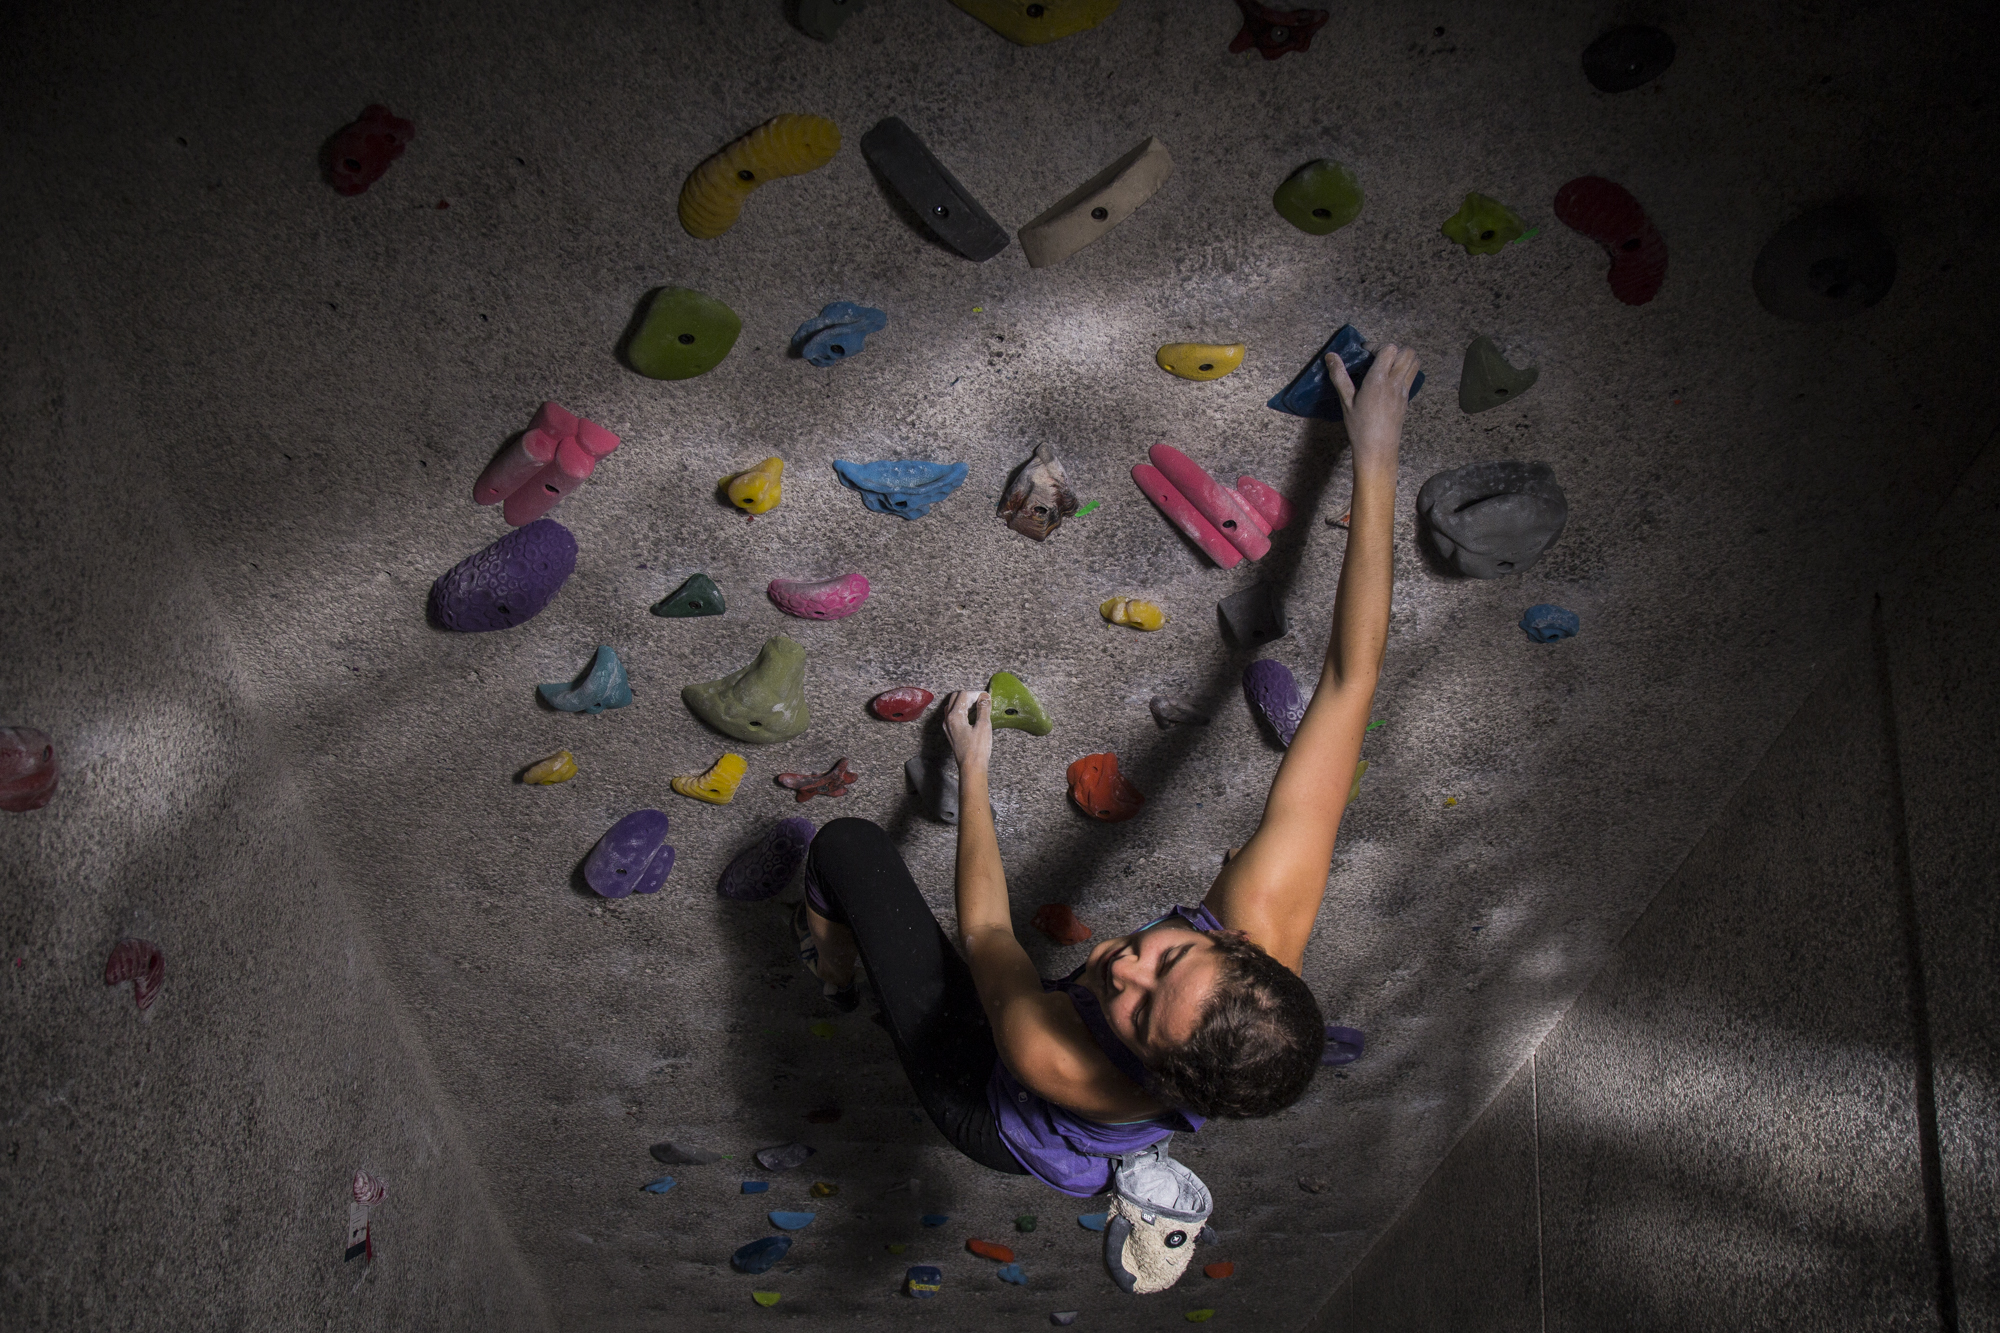 Kerry Scott, the president of Carolina Climbing Club, boulders at the Student Recreation Center in Chapel Hill, N.C., on Oct. 18, 2016. Hear her talk about climbing below: